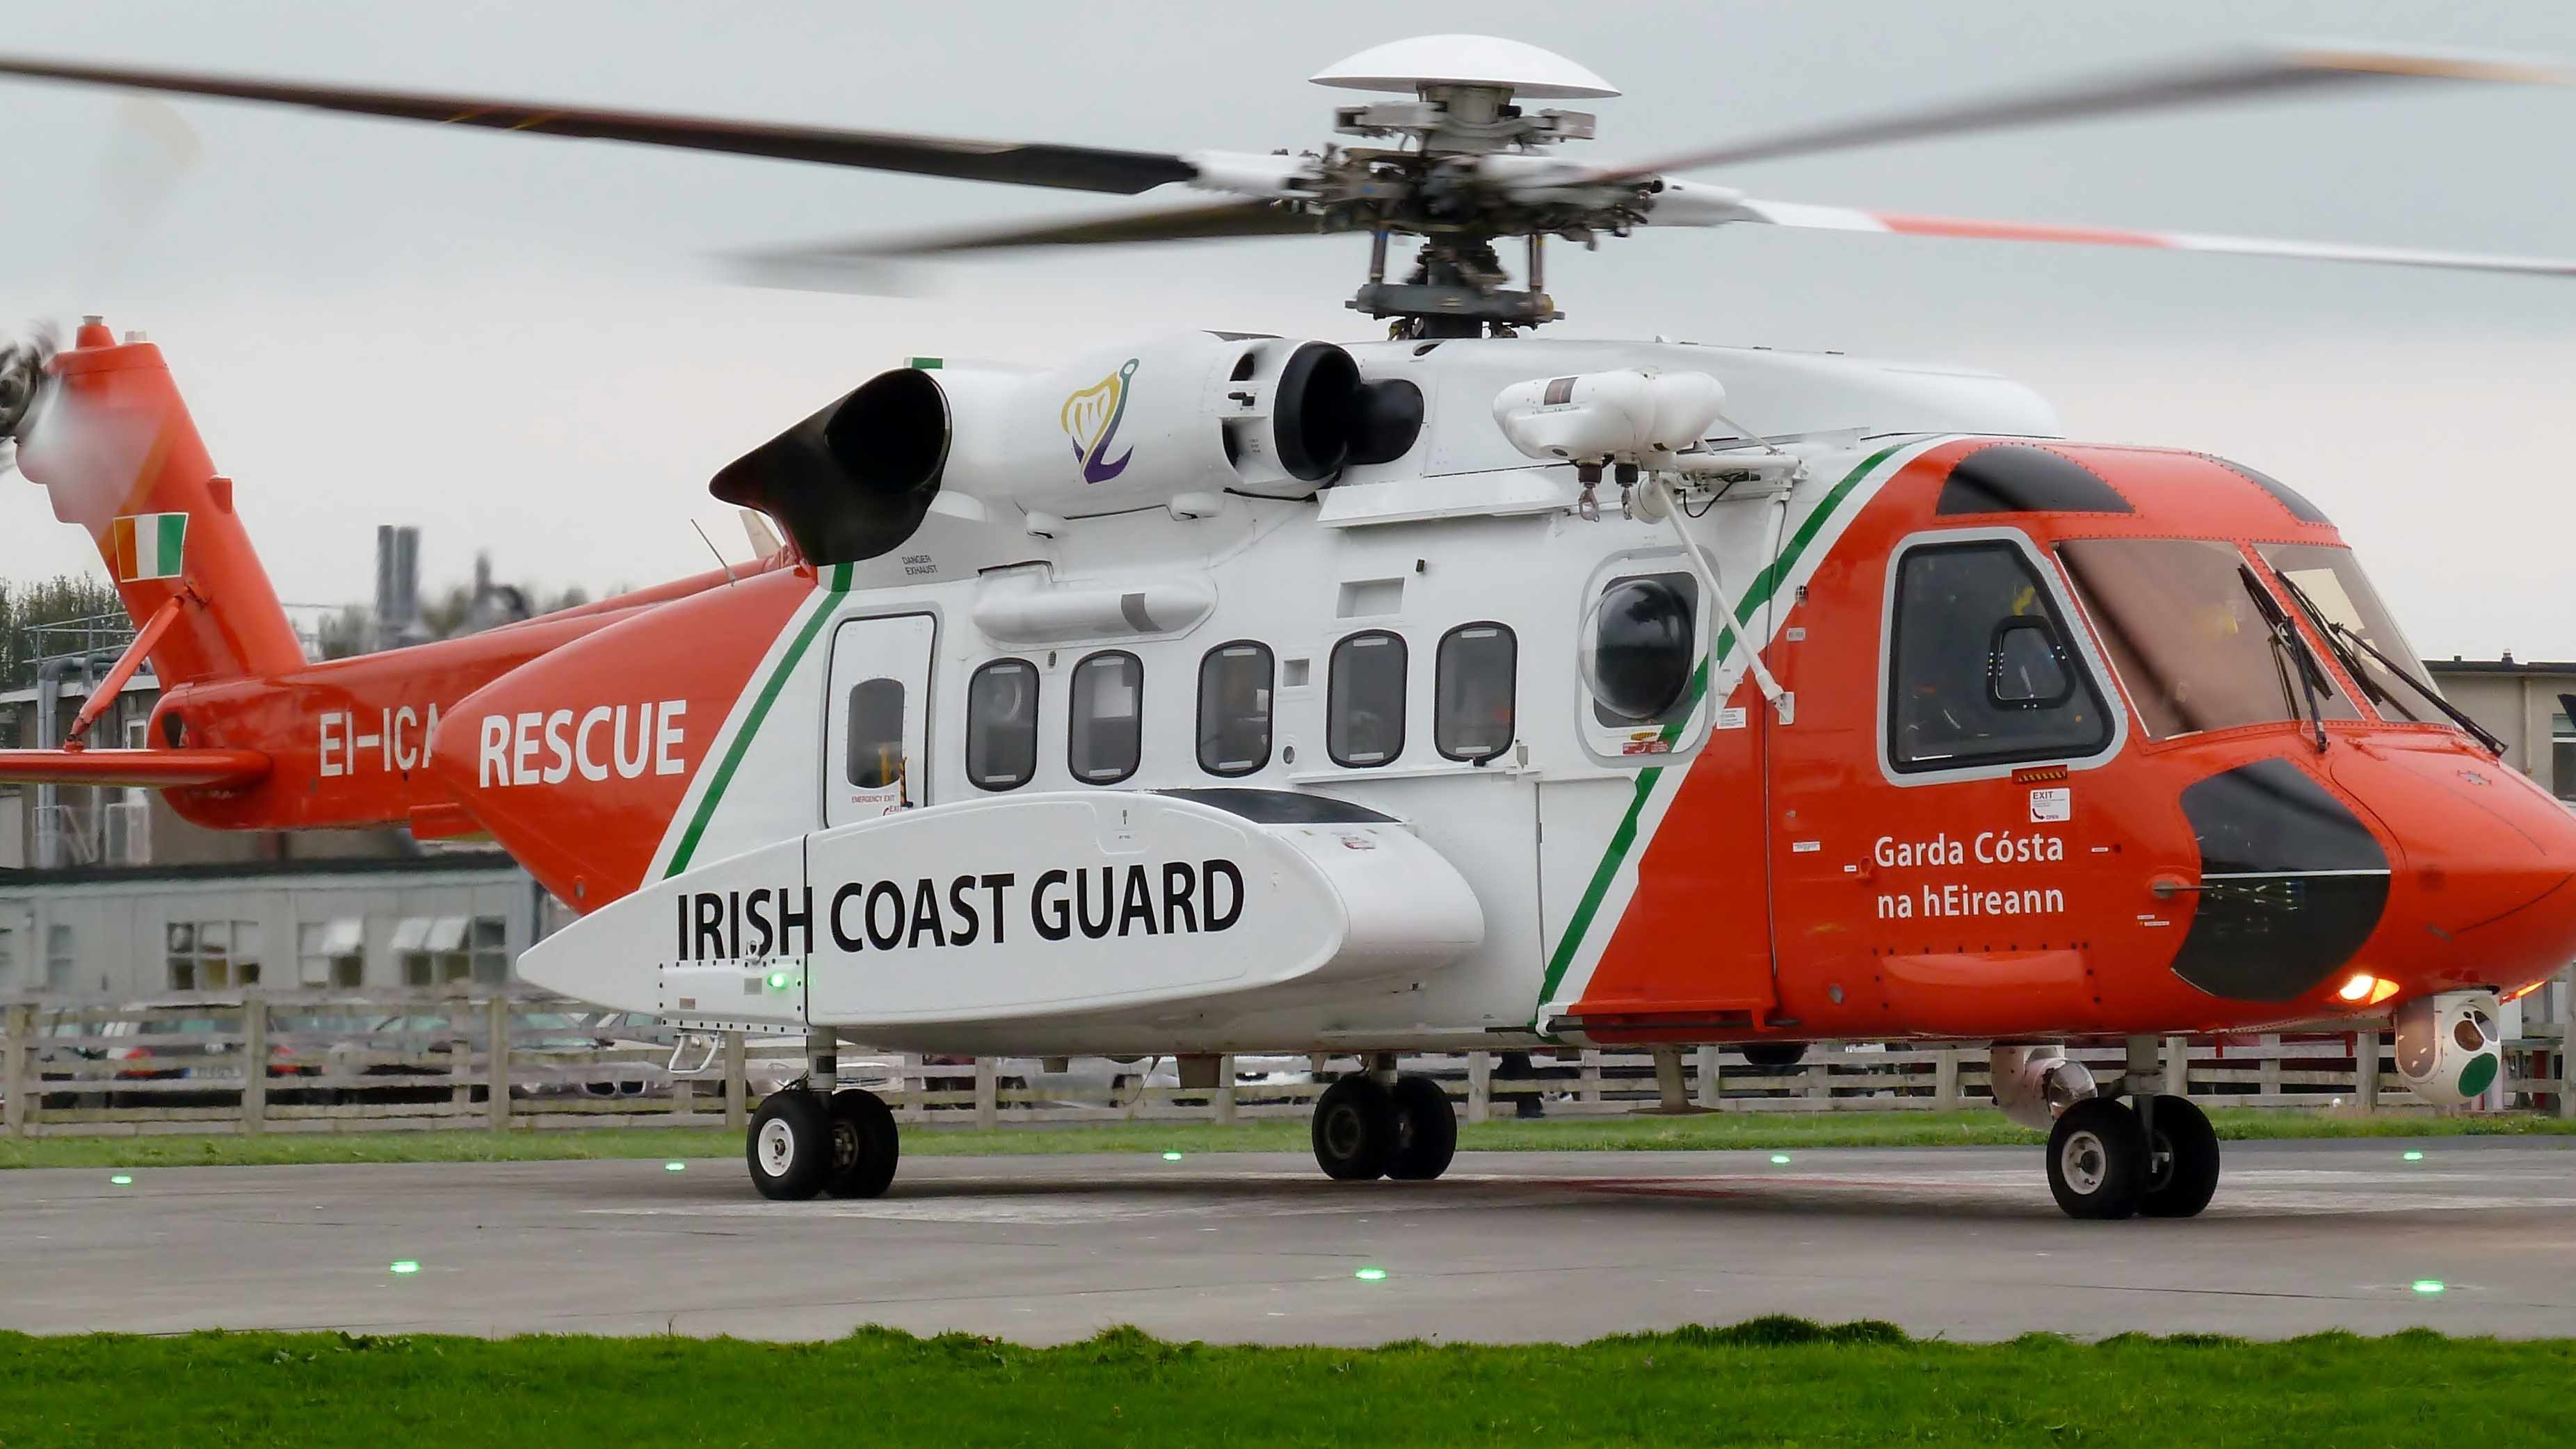 Planning Permission Has Been Lodged For A Helipad At Cork